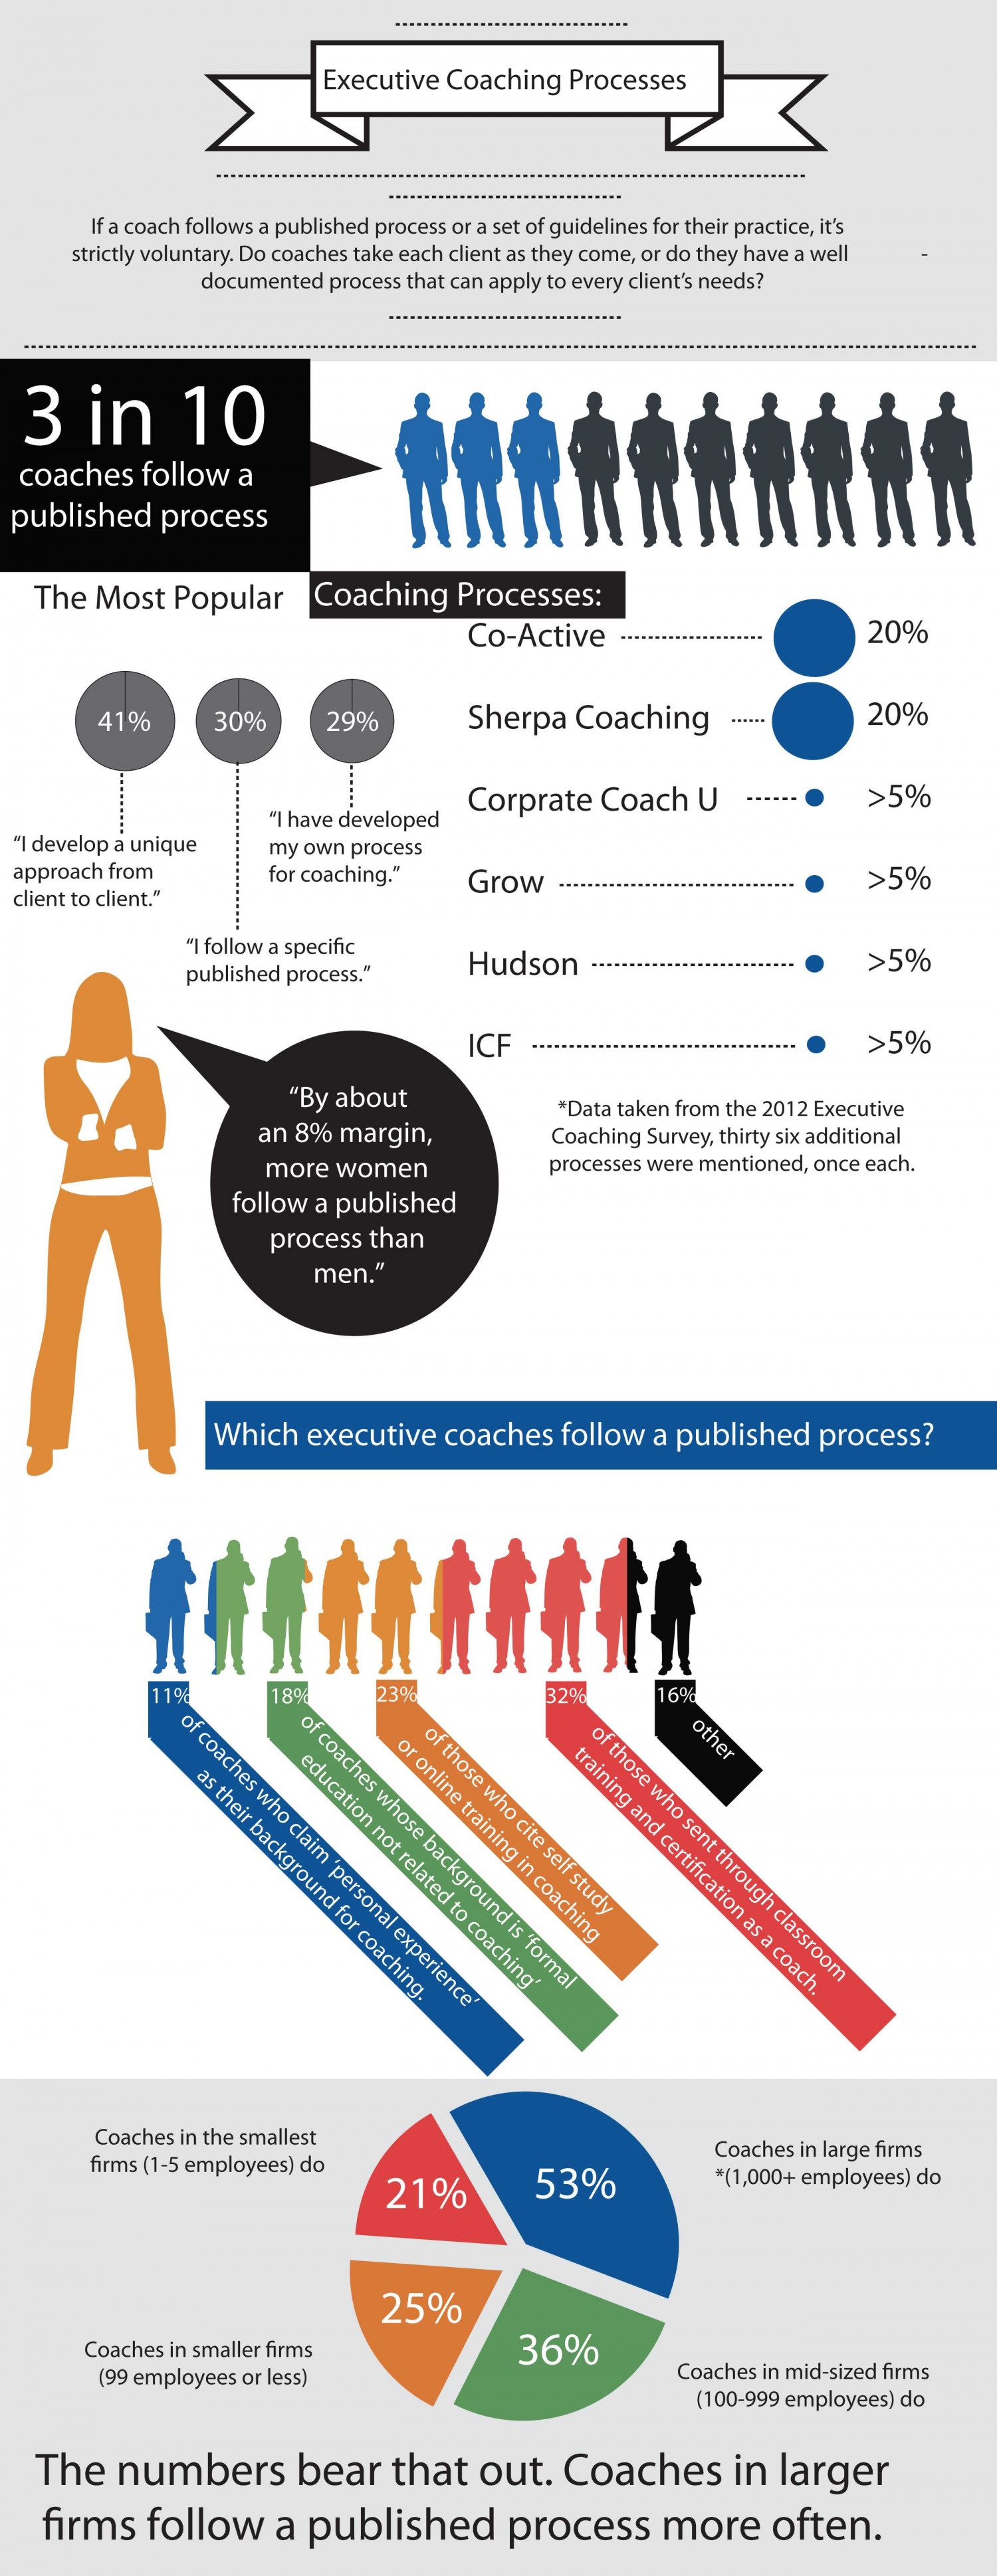 Executive Coaching Processes Infographic